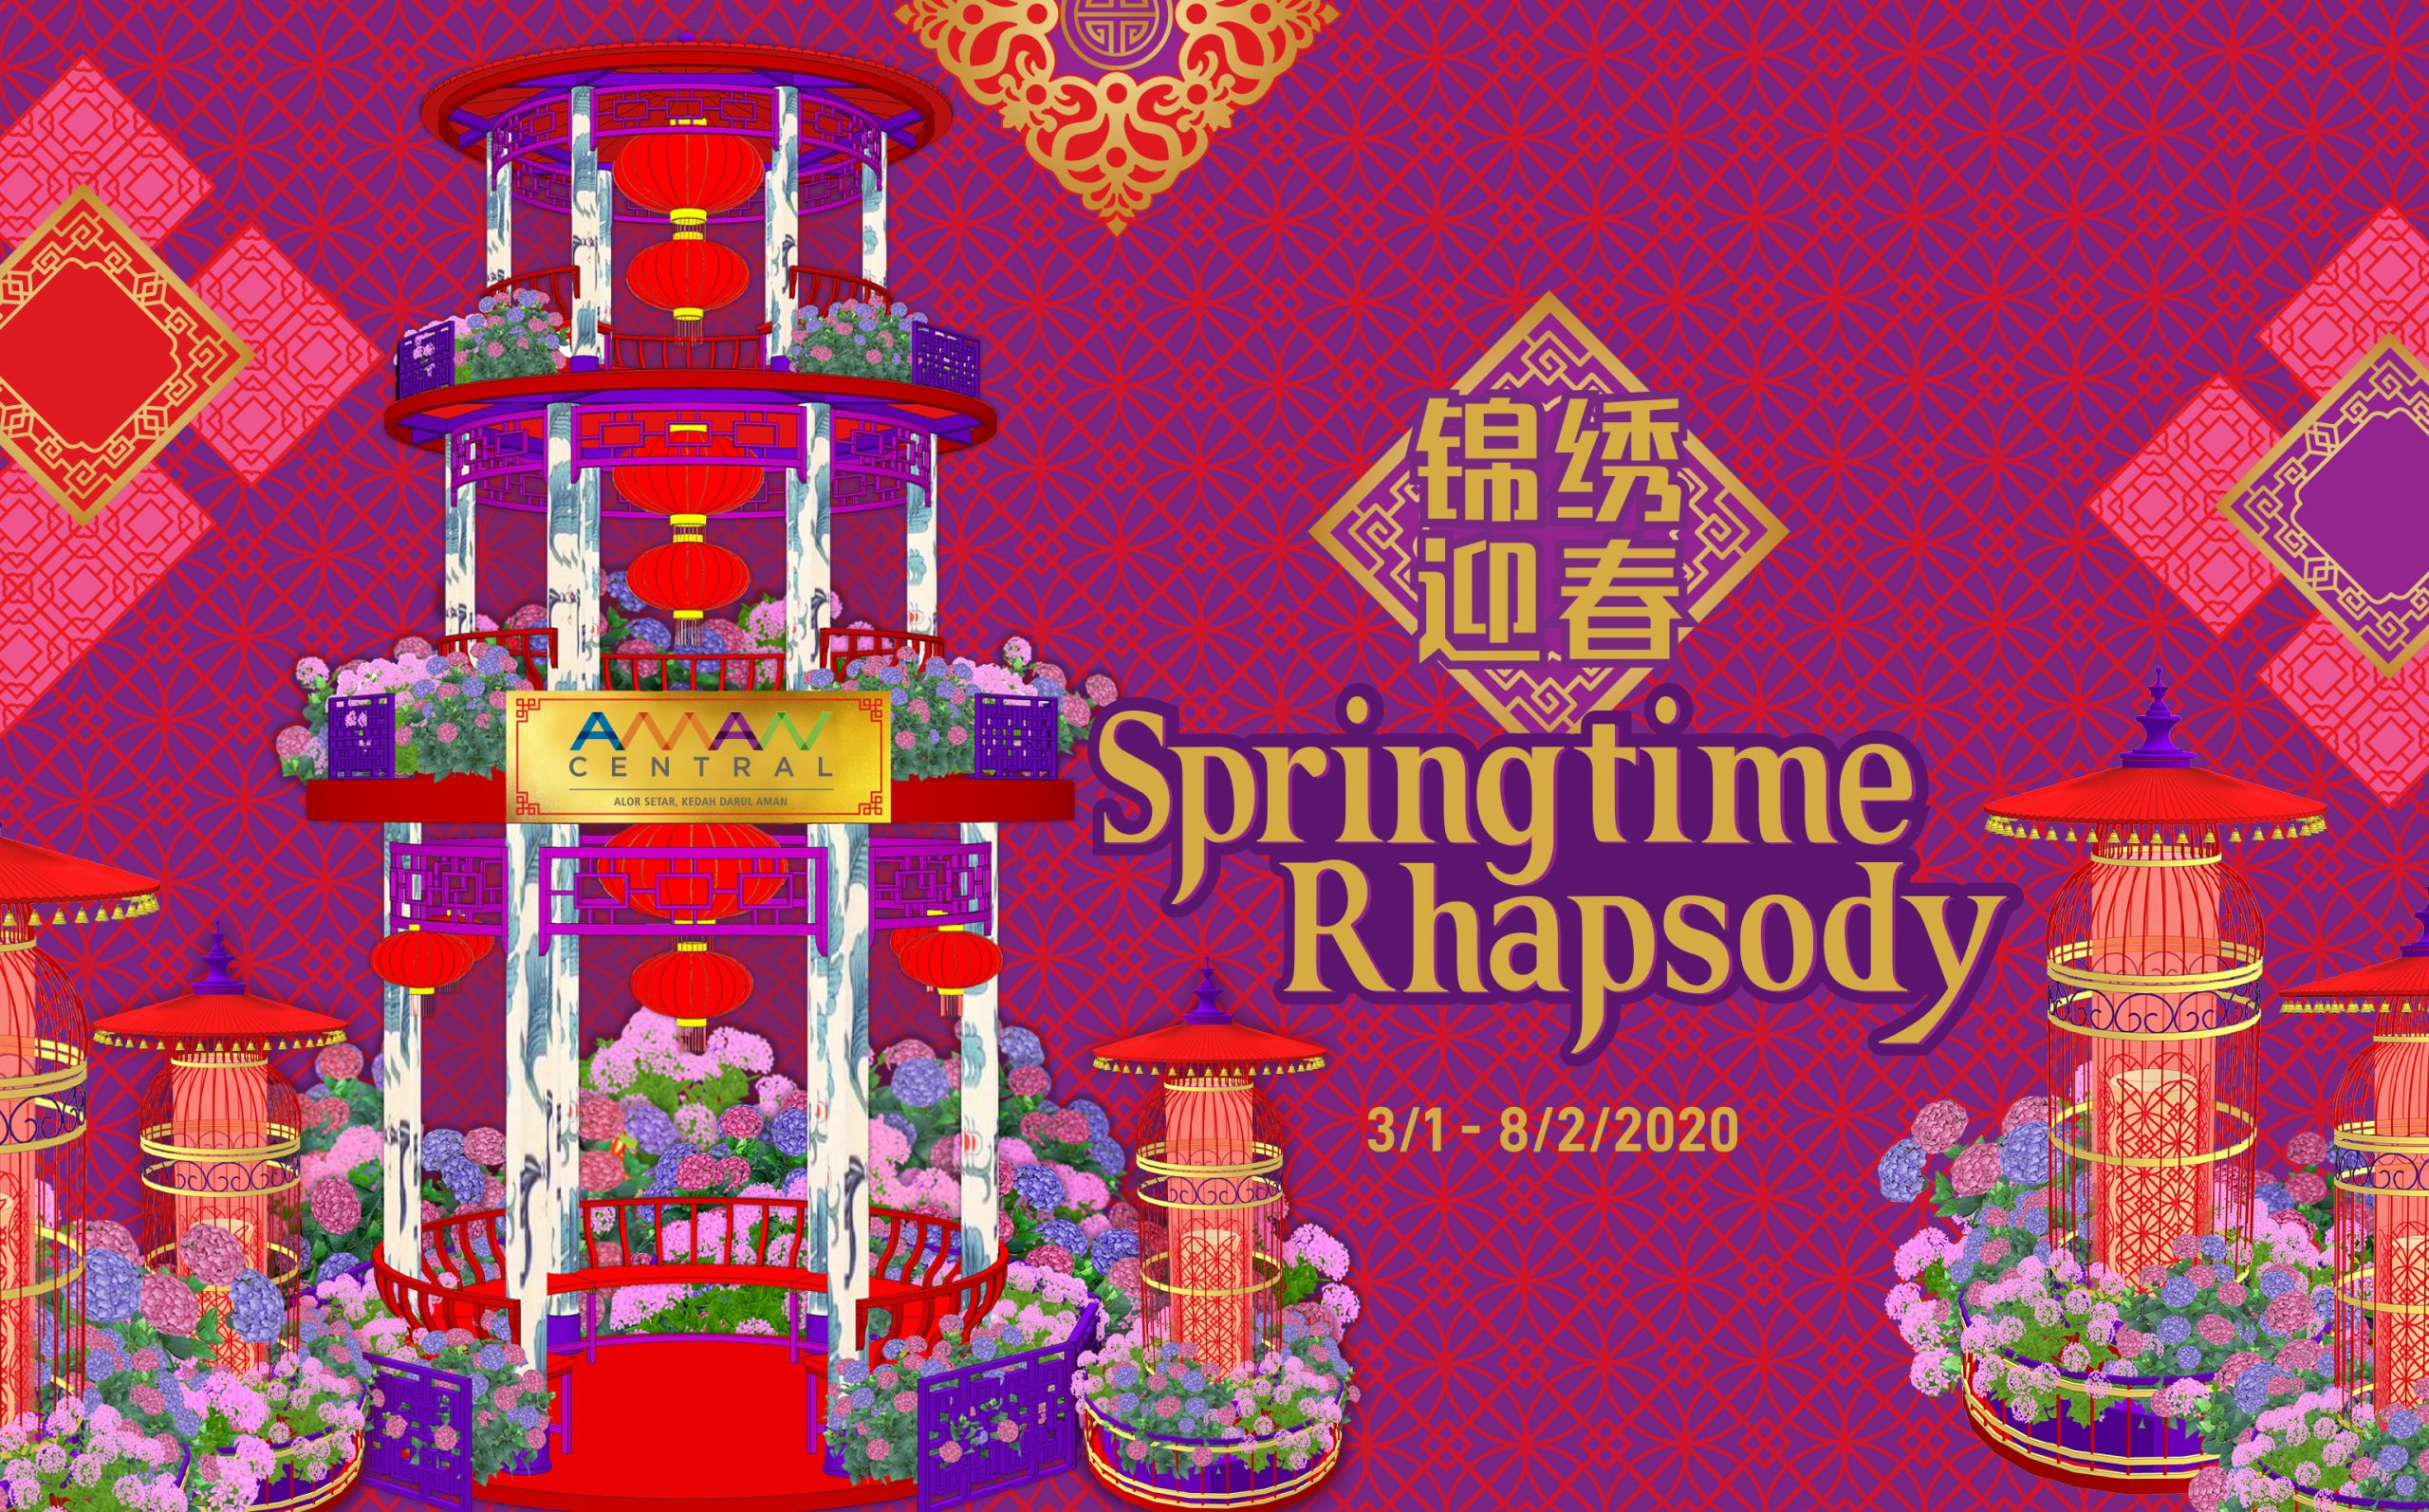 ENJOY AMAN CENTRAL'S SPRINGTIME RHAPSODY THIS CHINESE NEW YEAR 2020